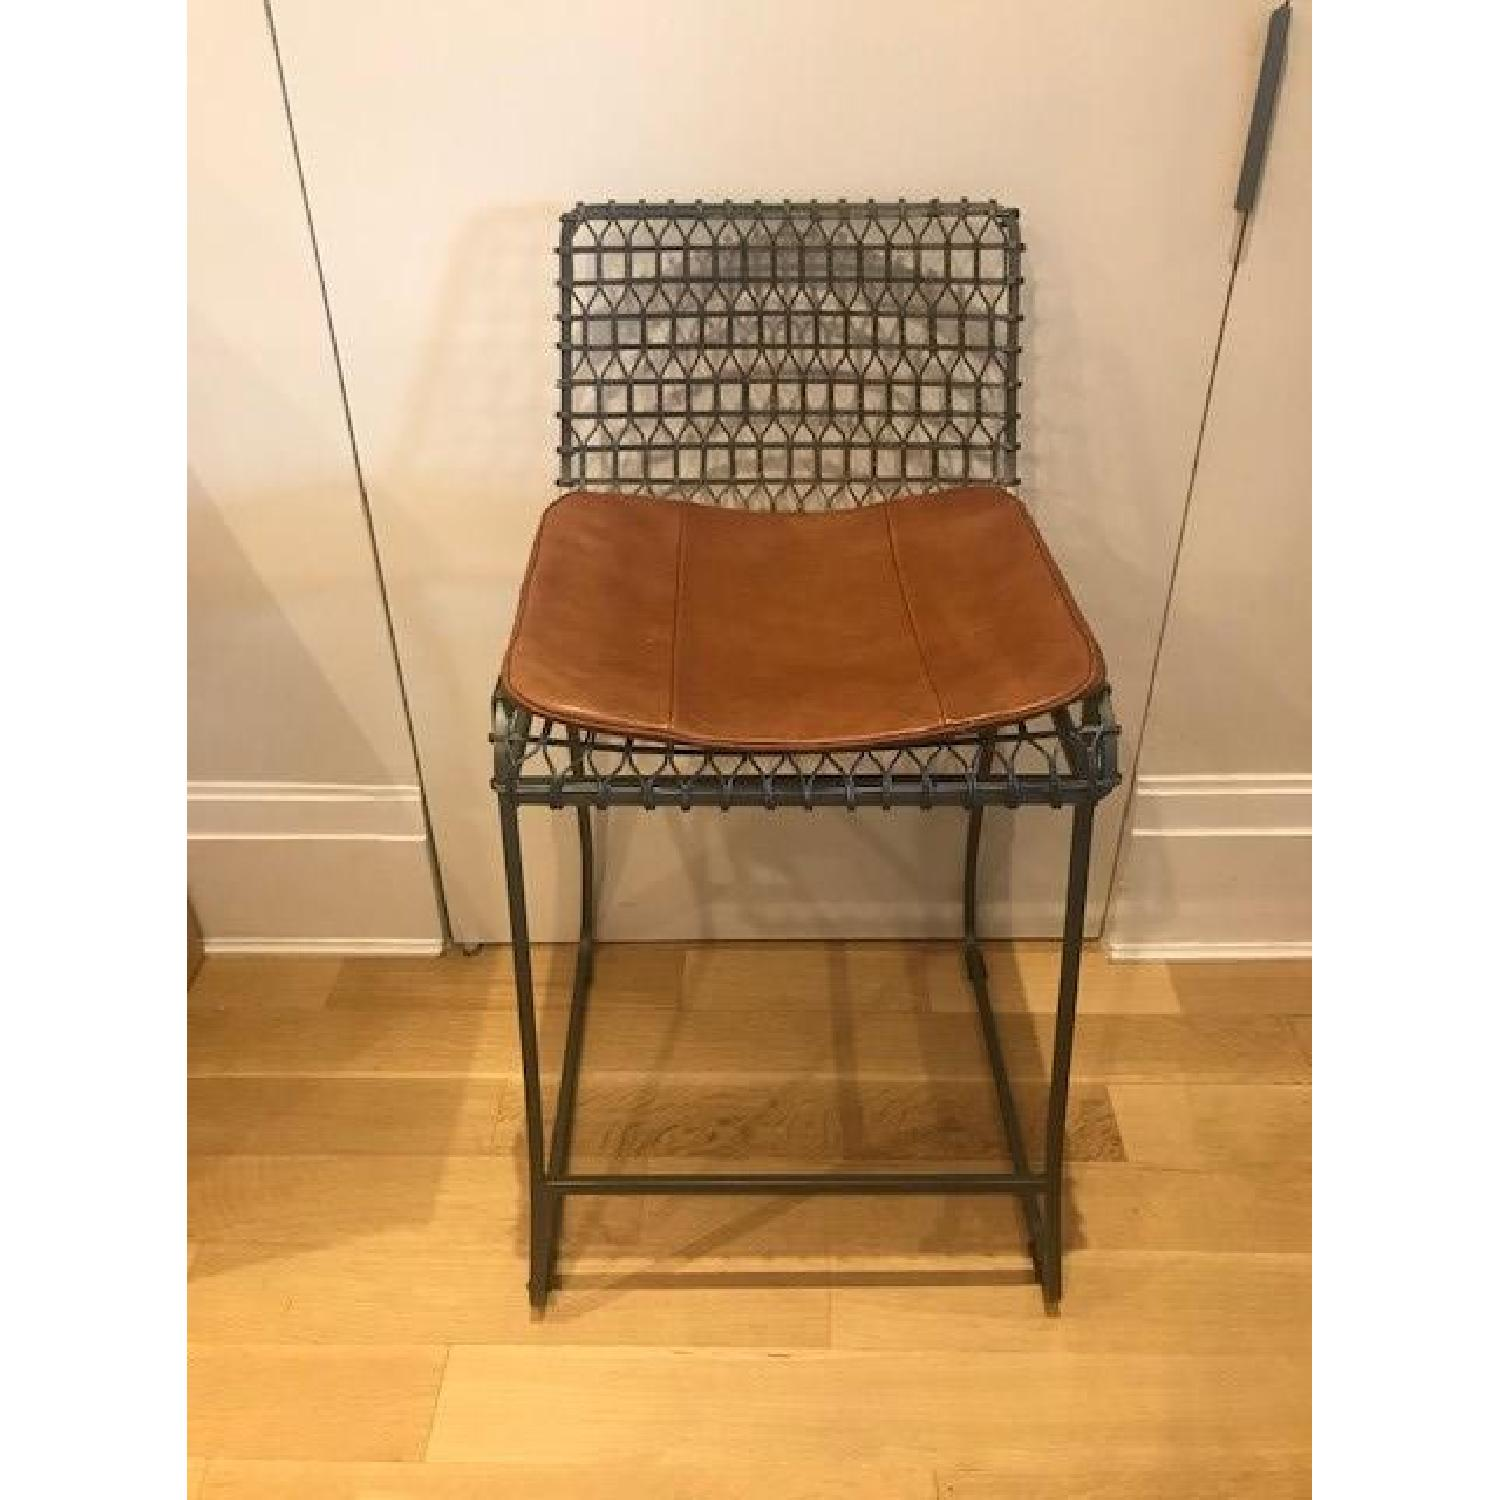 Crate & Barrel Tig Counter Stools w/ Brown Leather Seats-0